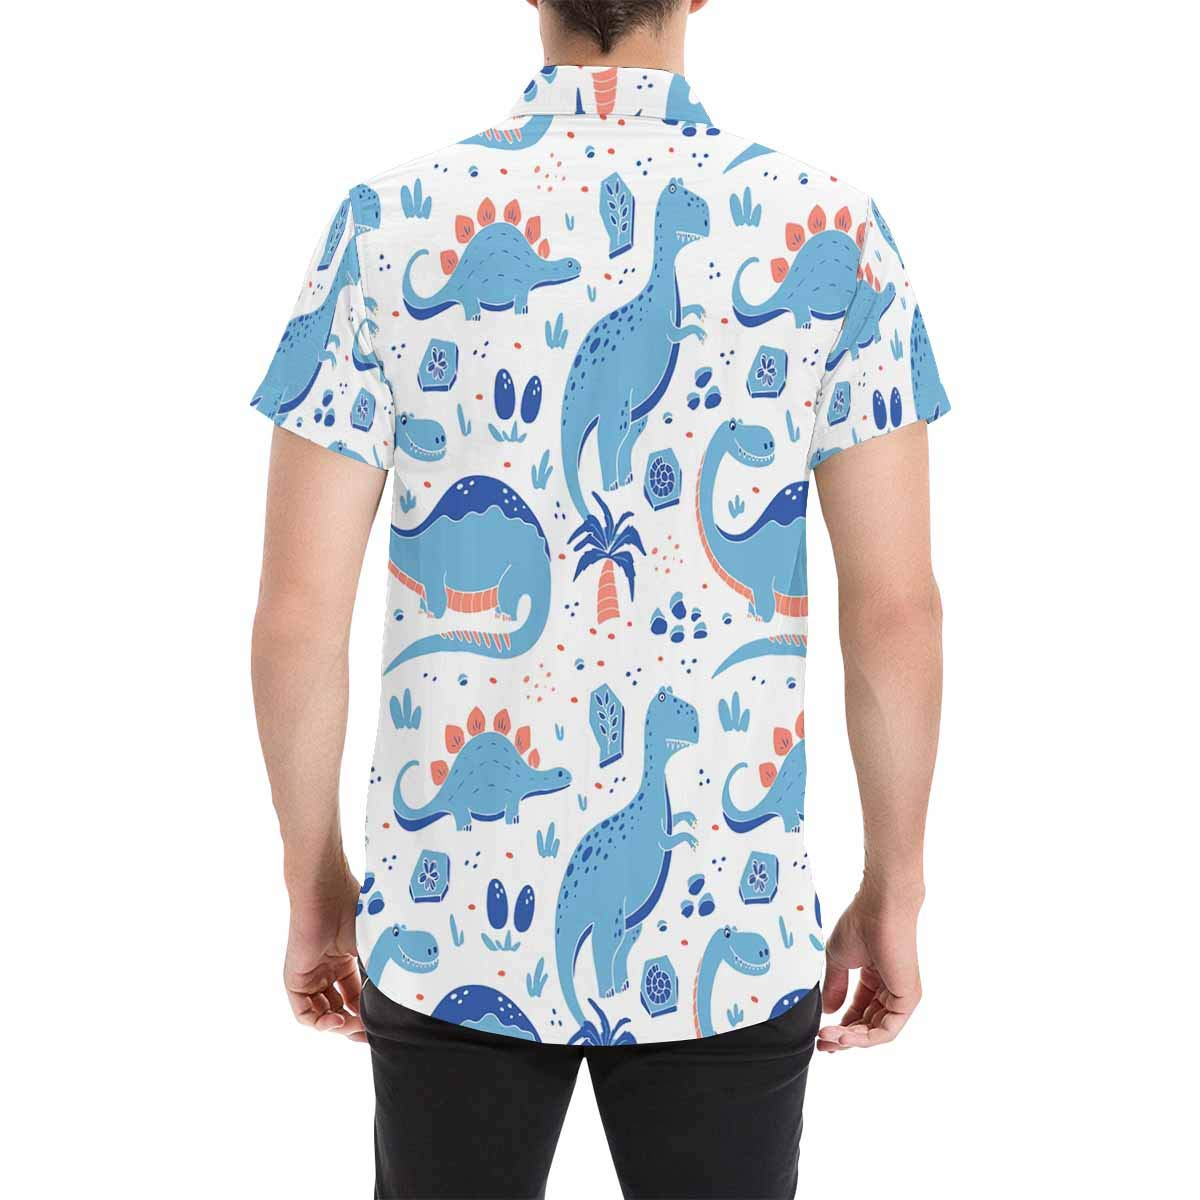 InterestPrint Cute Blue Dinosaurs T-Shirt Summer Shirt Stand Collar Beach Top for Men